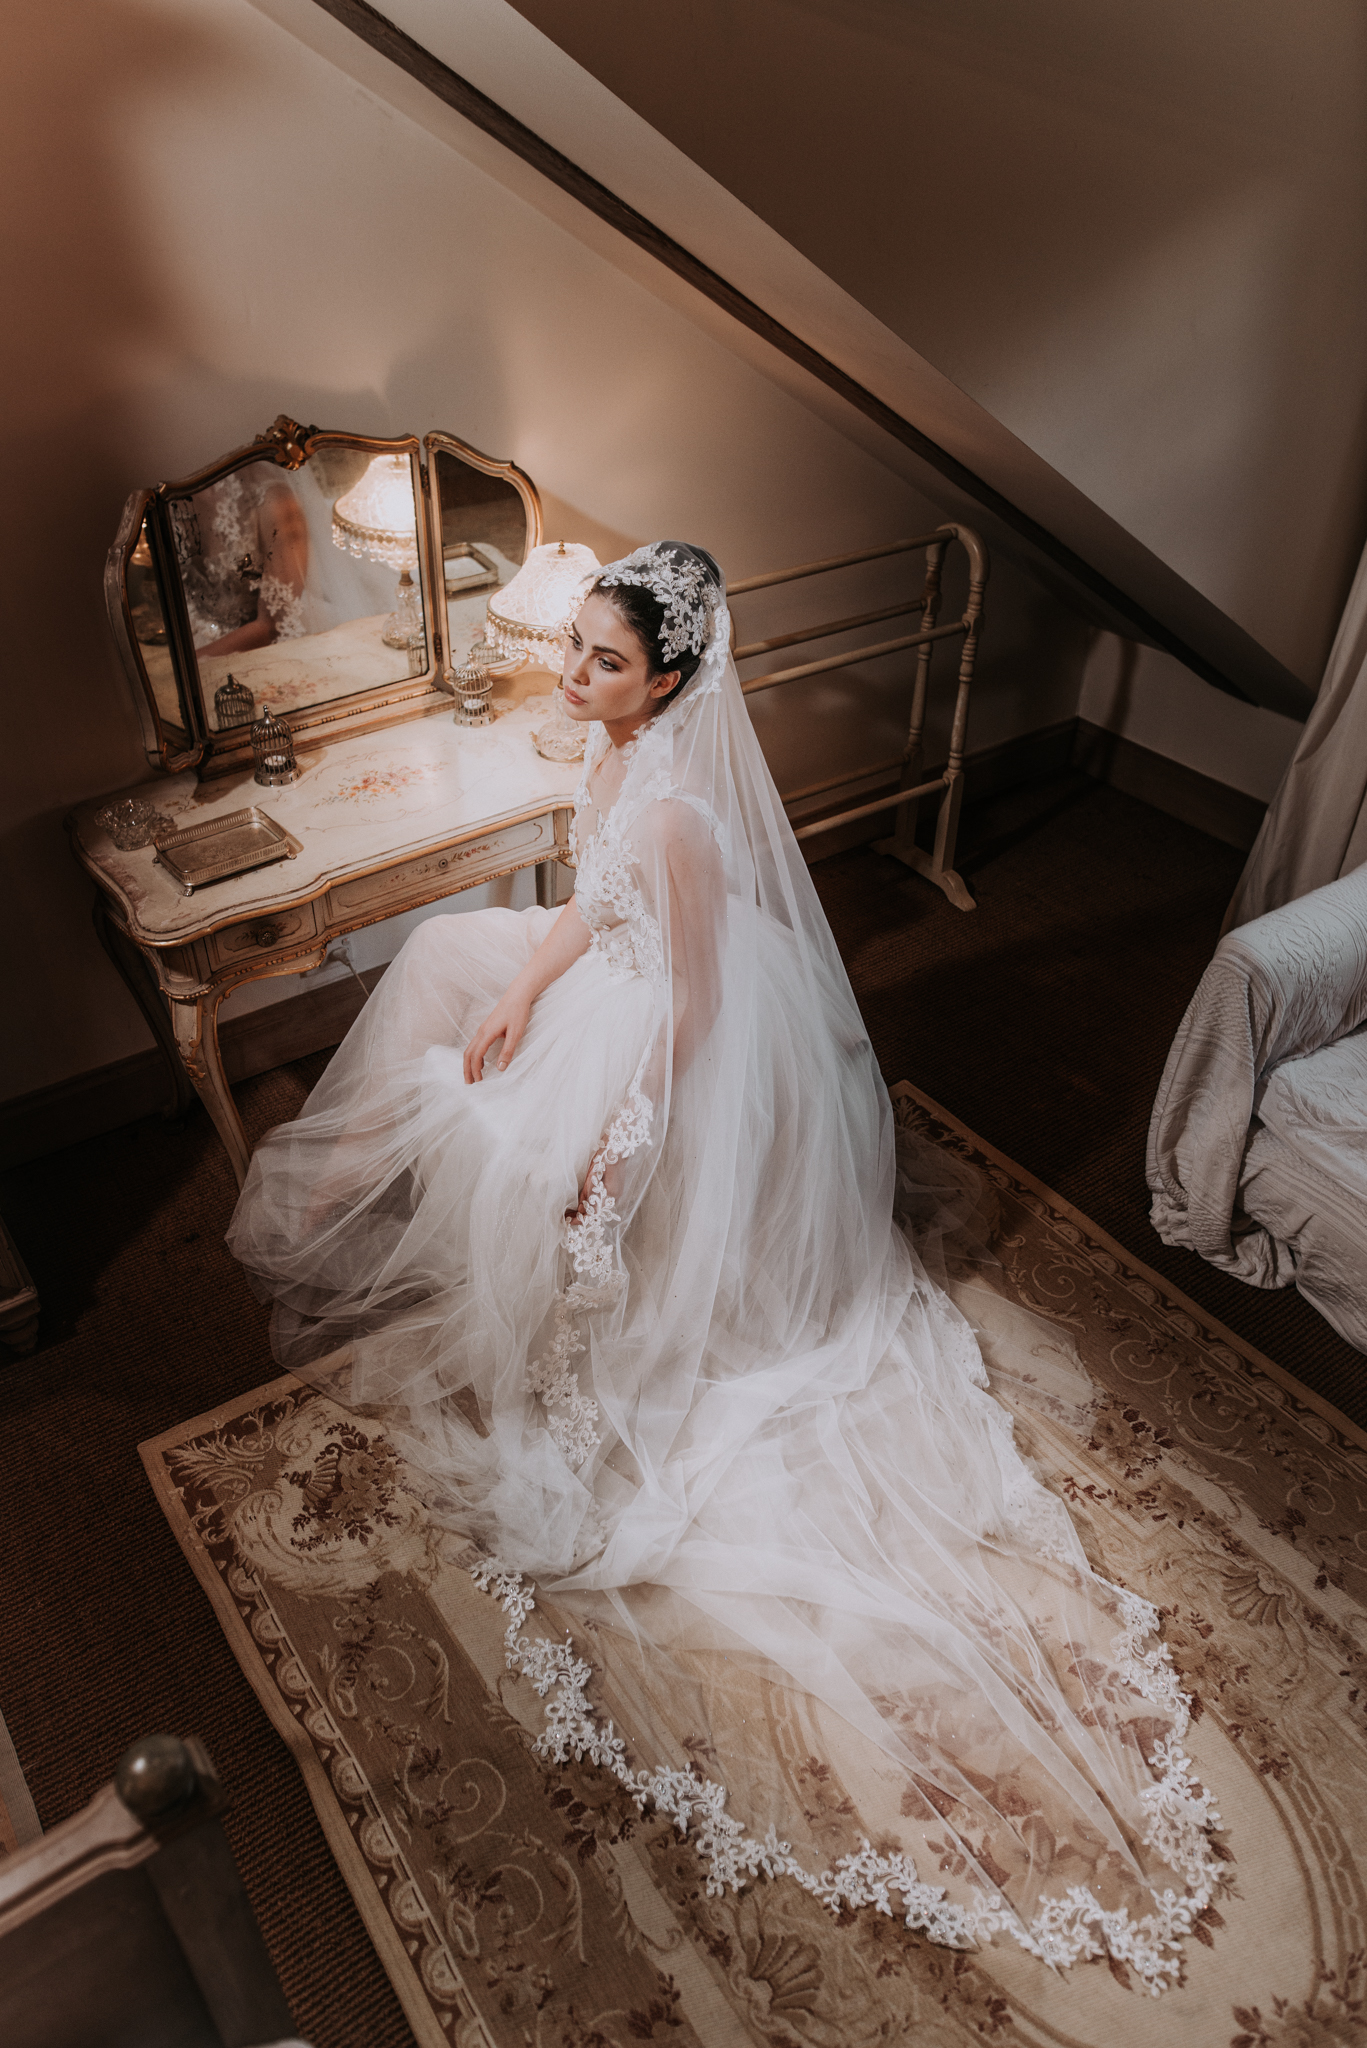 Lovelenscapes Photography X Ulyana Aster Bridal • Les Deux Belettes • Leigh McCoy • Bloodwood Botanica • Alena Iano • Alisa Rudnev • Demi Groot • Jessie Lockley • Maddison Ruby • 133.jpg